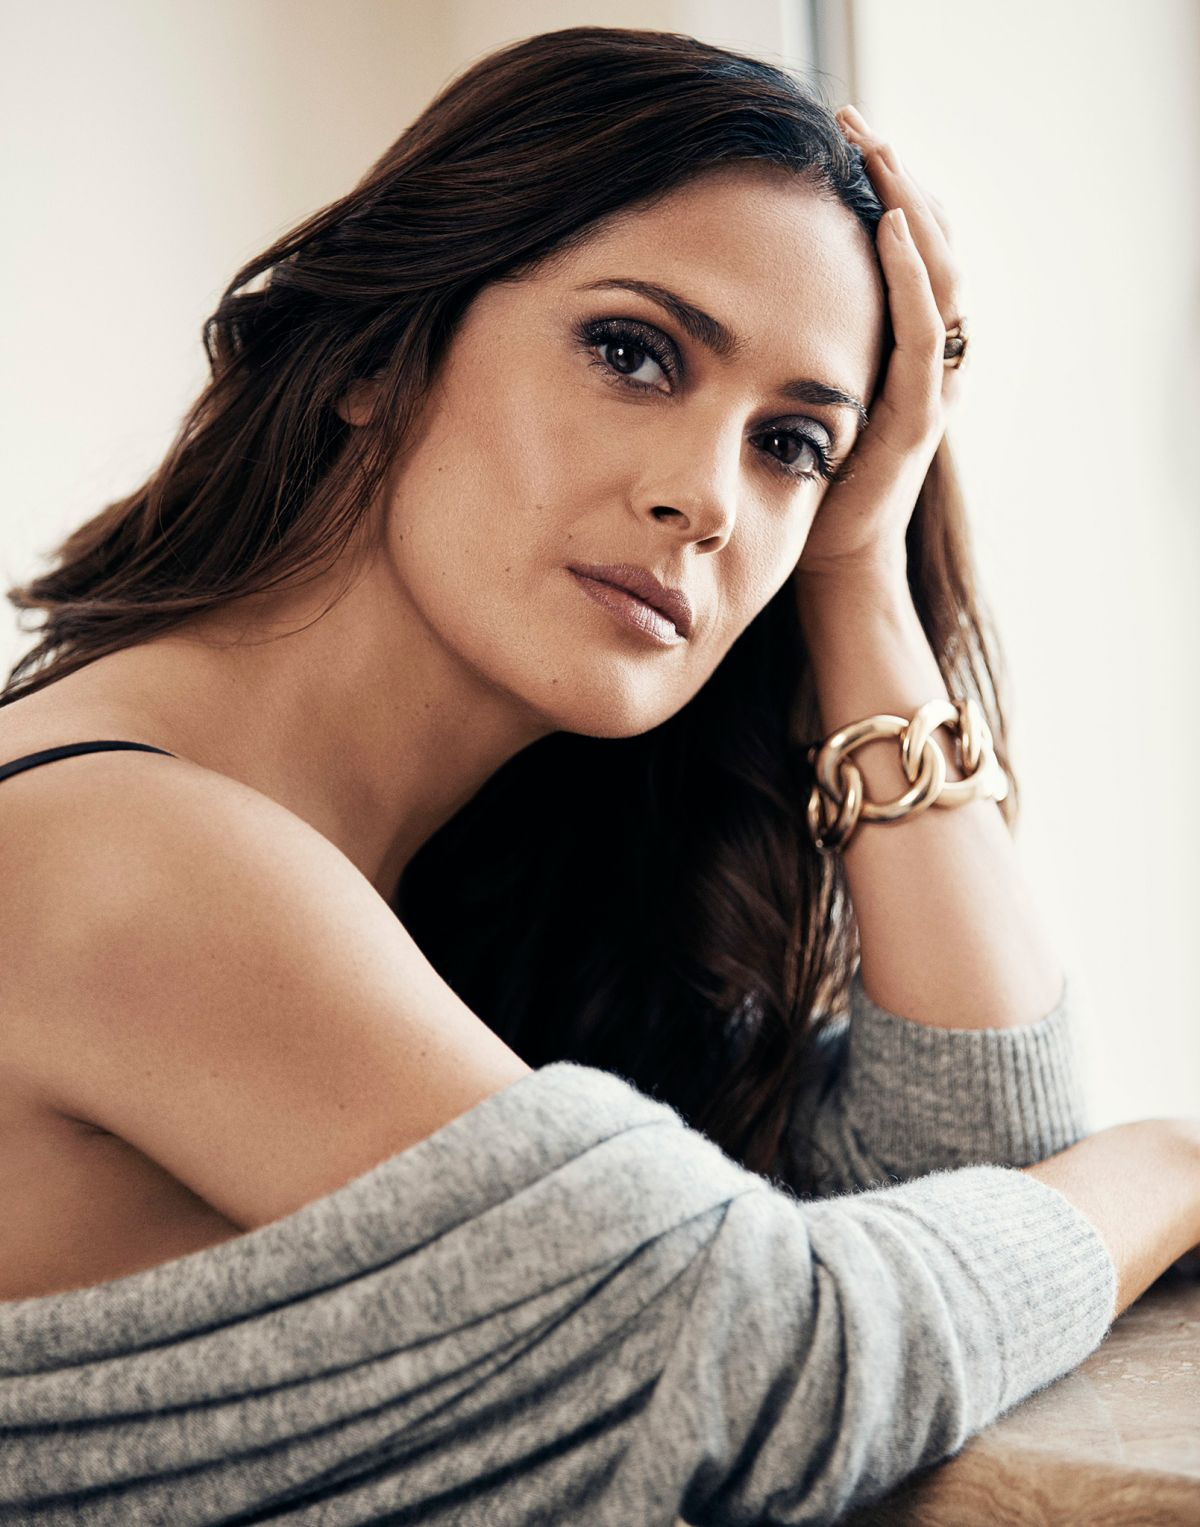 Salma Hayek Photo Shoot for Evening Standard, September 2015 Issue by Jason Kim